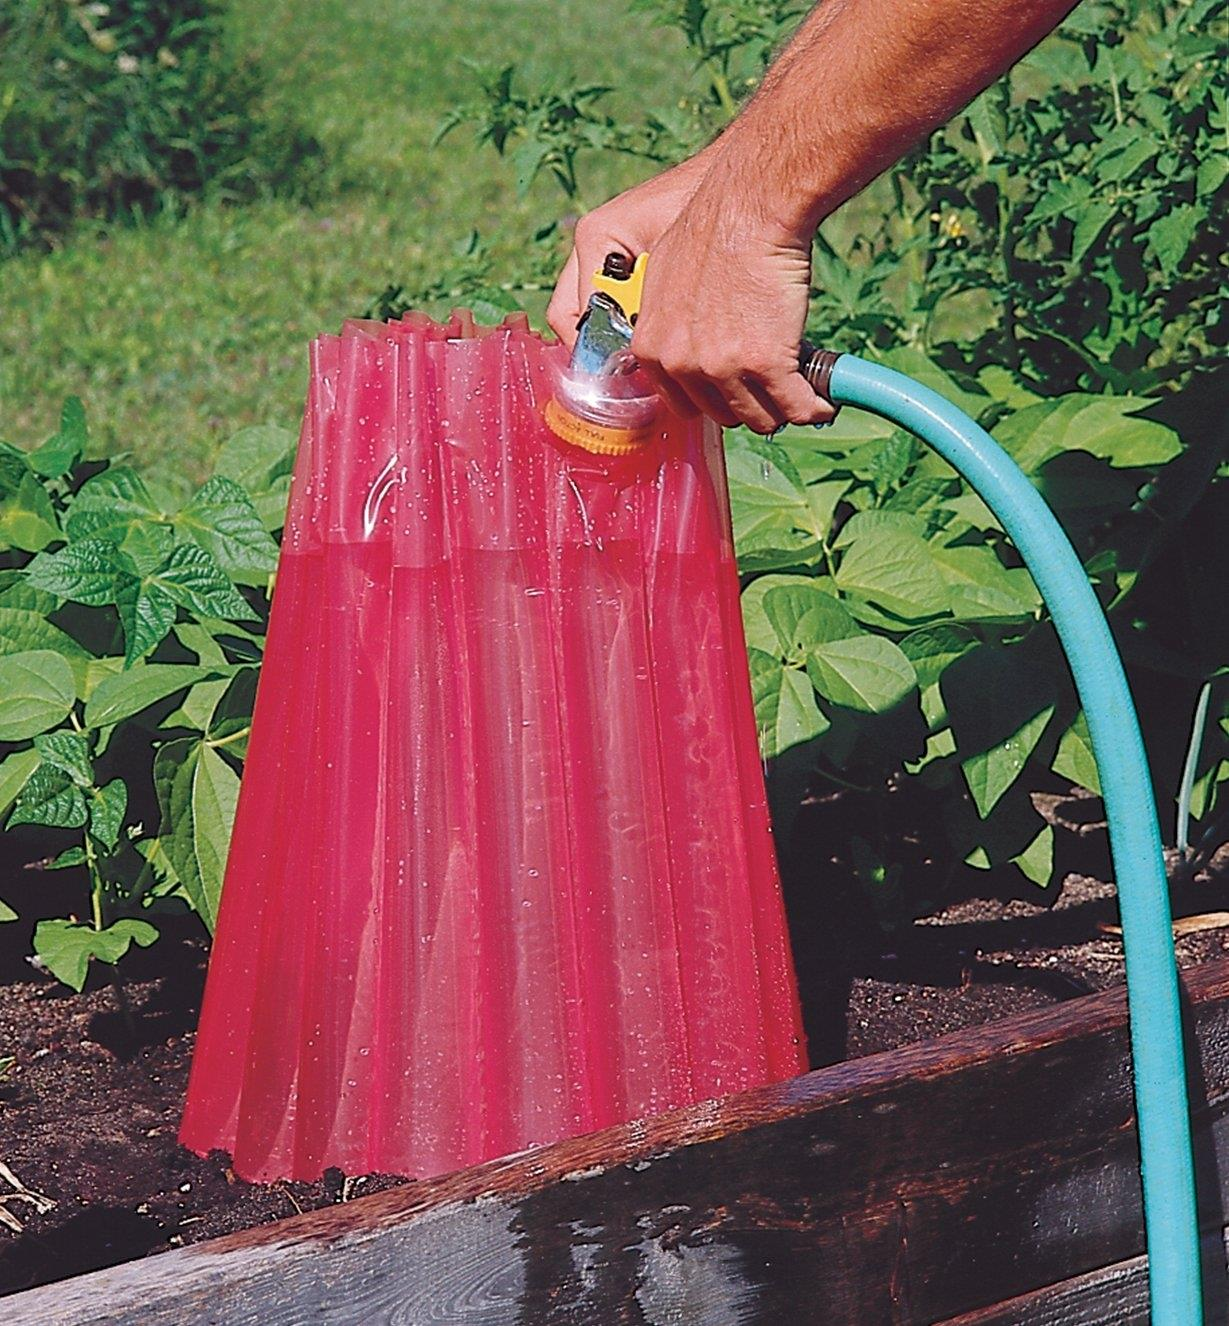 Filling a Frost Protector with water from a hose